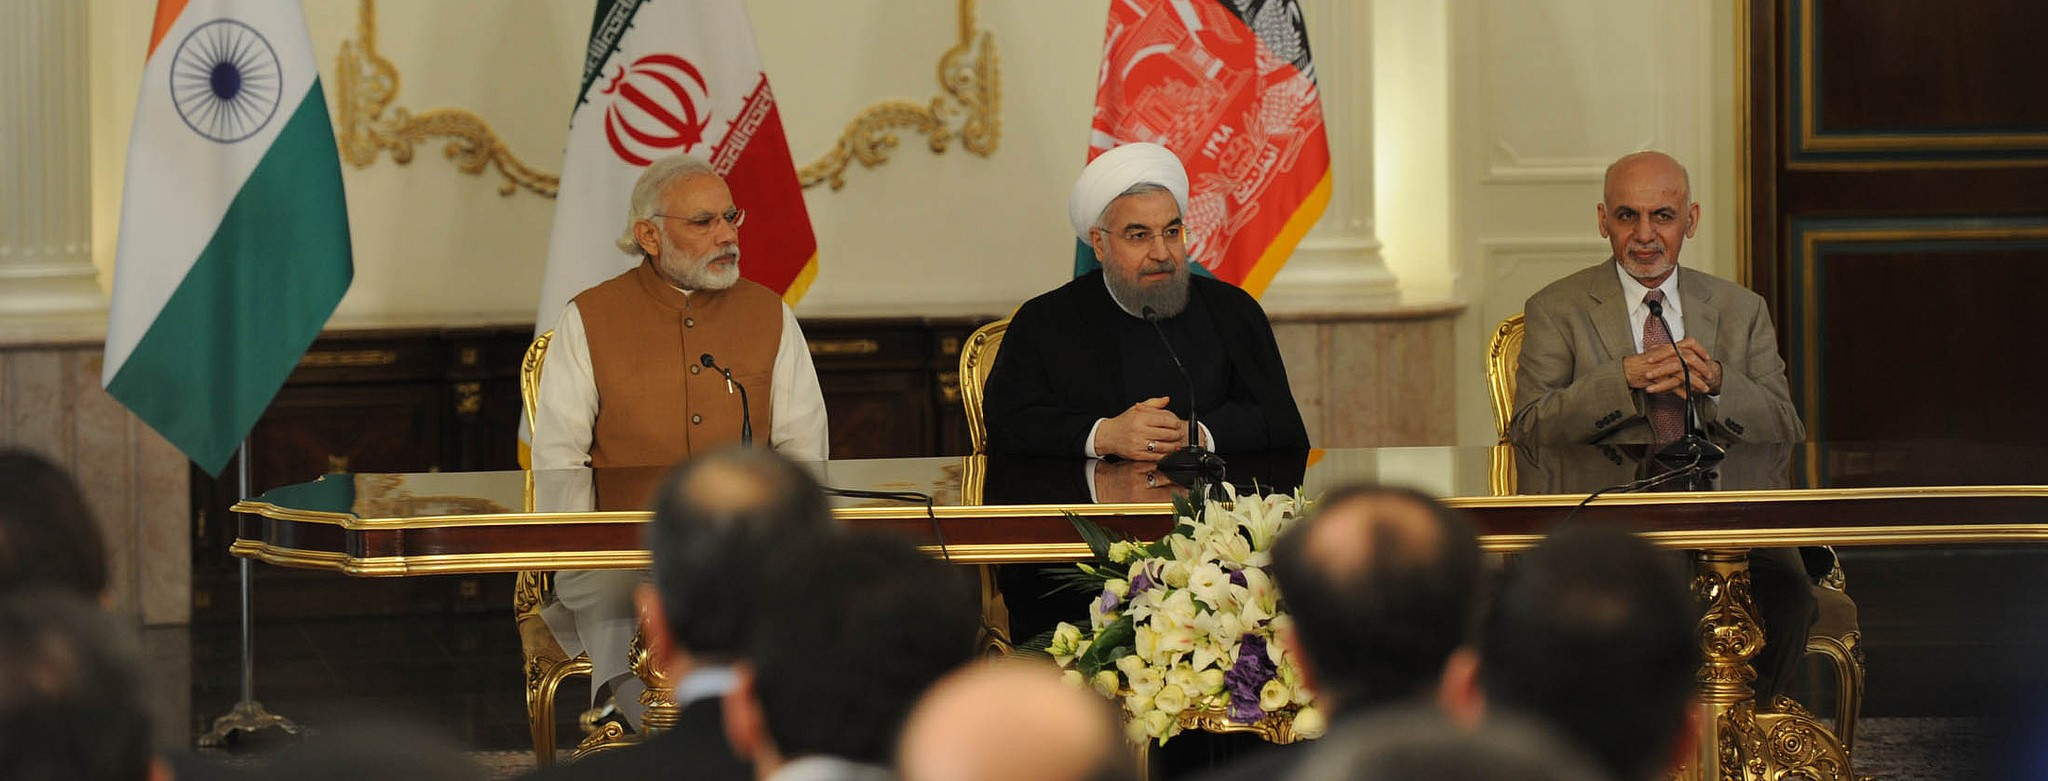 Indian Prime Minister Modi, Iranian President Rouhani and Afghanistan President Ghani at the tripartite agreement signing, May 2016 (Photo: Flickr/MEAphotography)